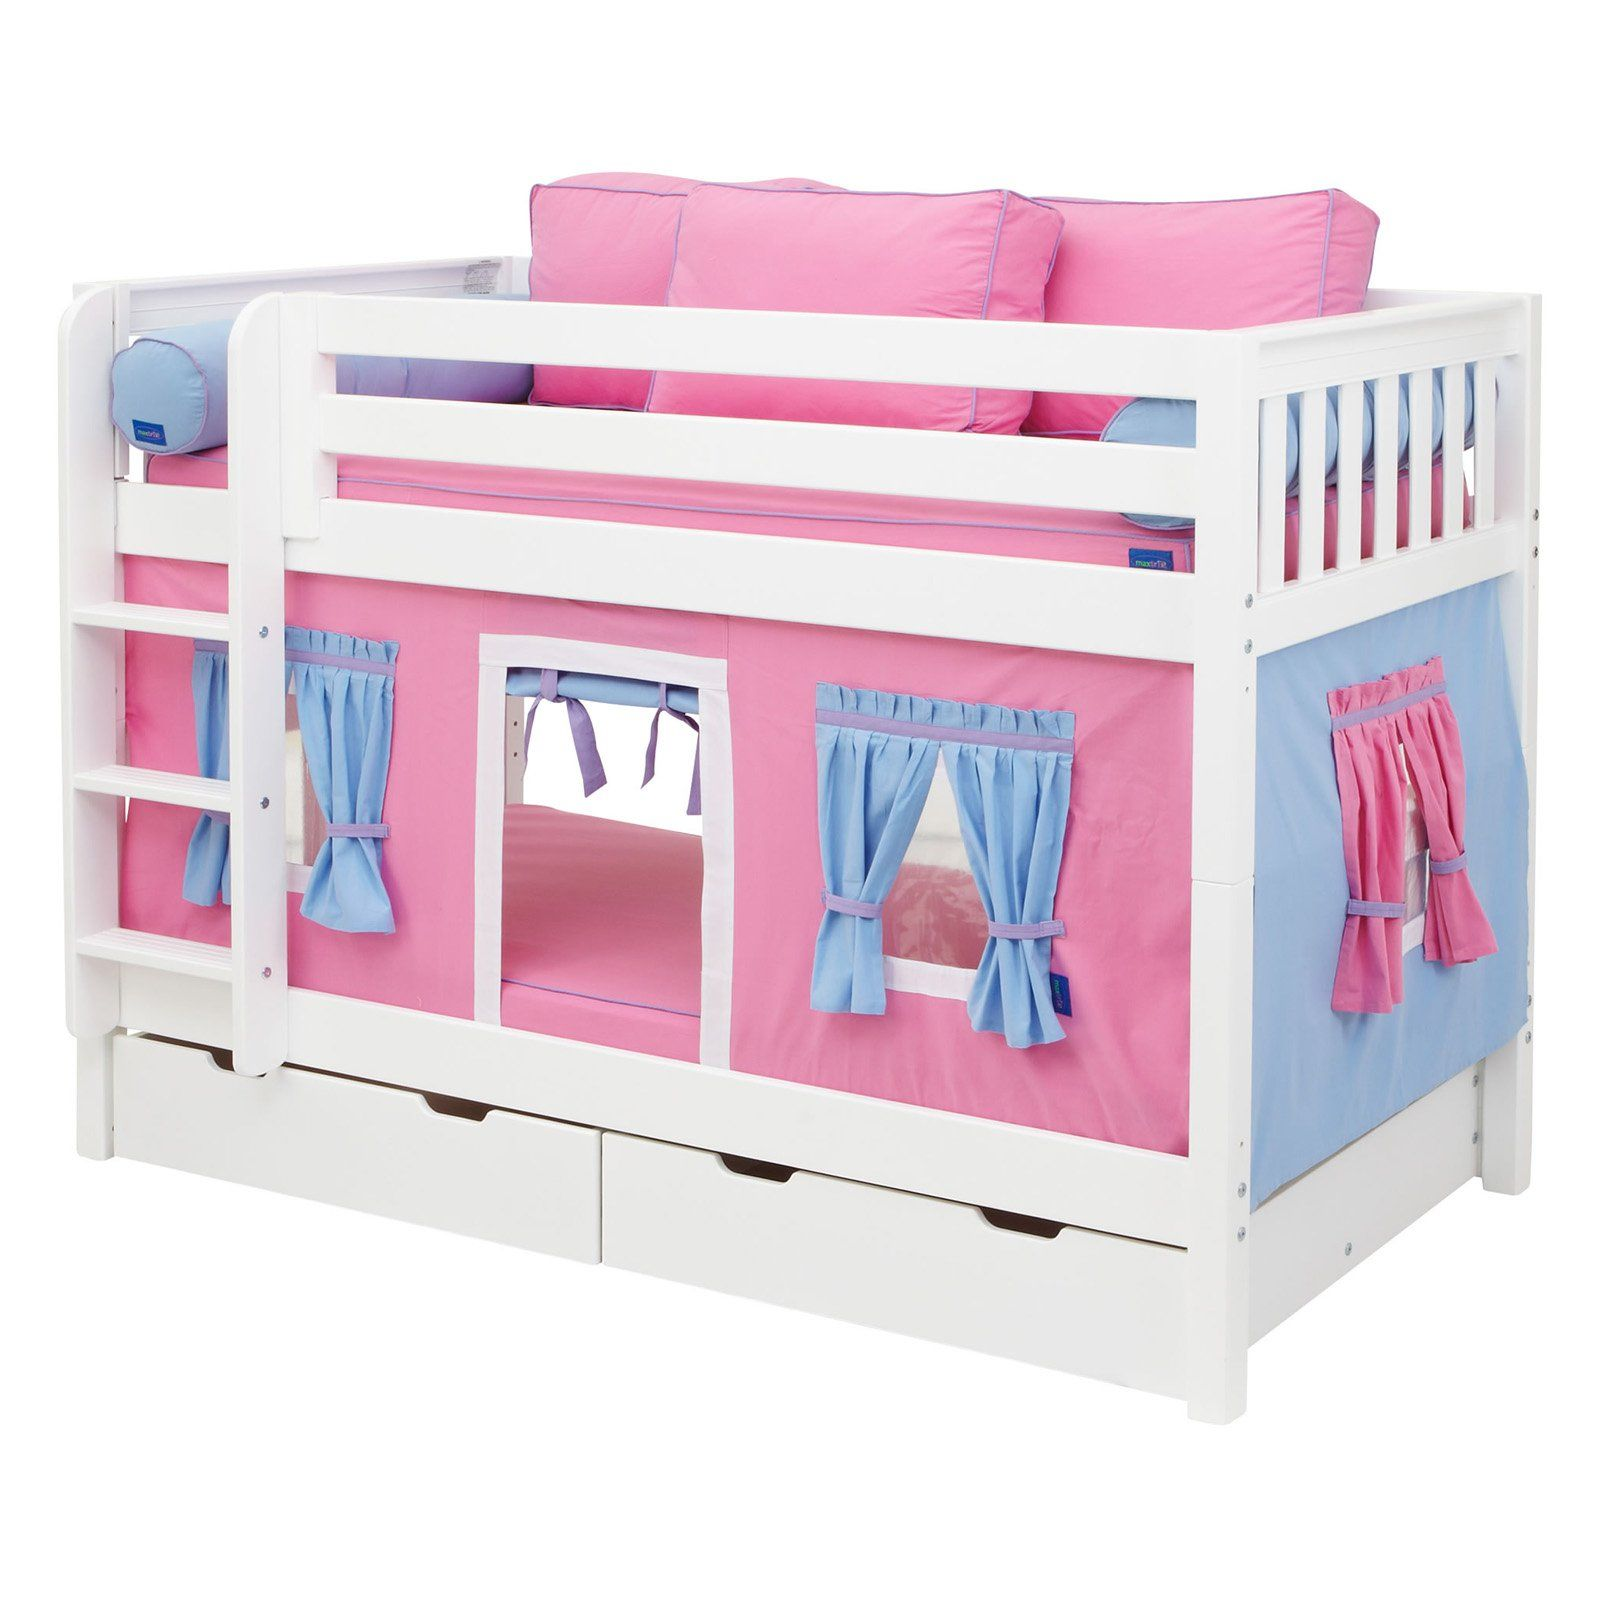 Toddler bunk bed twin - Hot Shot Girl Twin Over Twin Tent Bunk Bed Nap Times And The Play